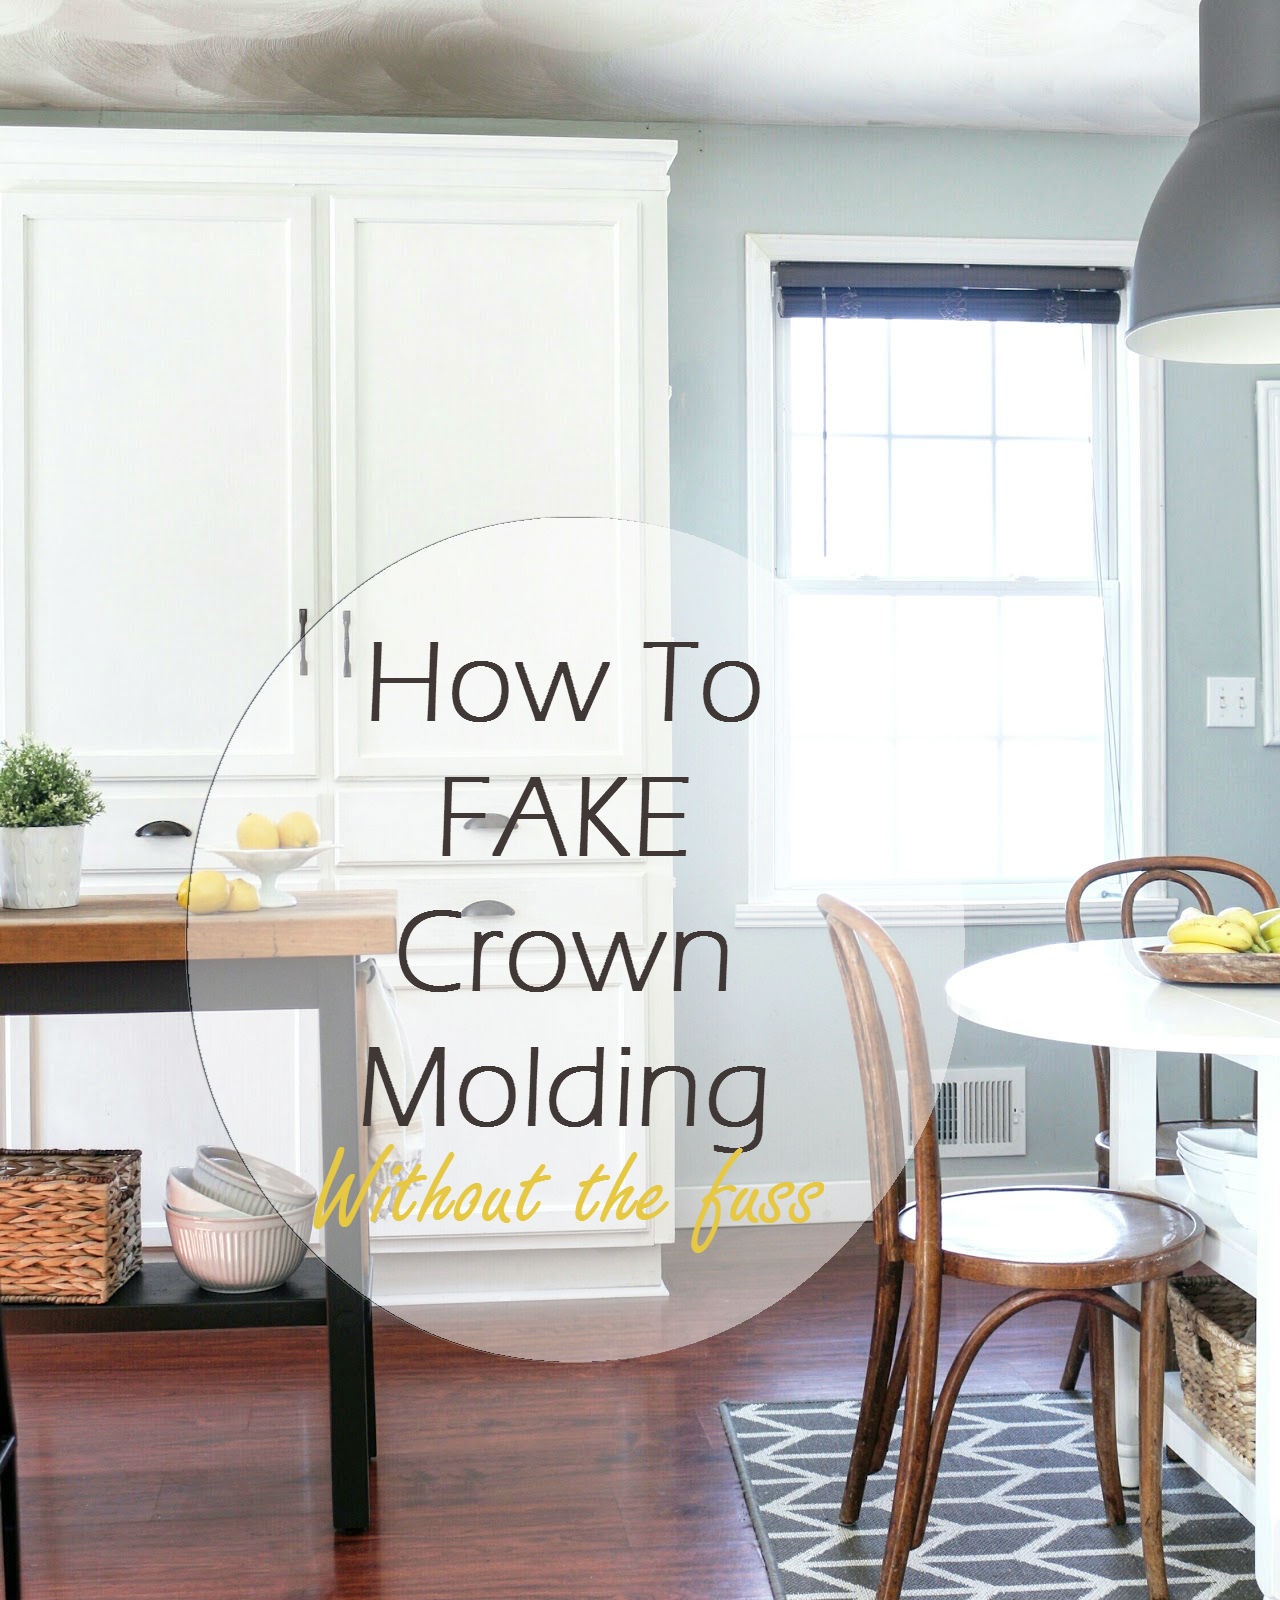 My diy kitchen cabinet crown molding how to fake the for White kitchen cabinets with crown molding